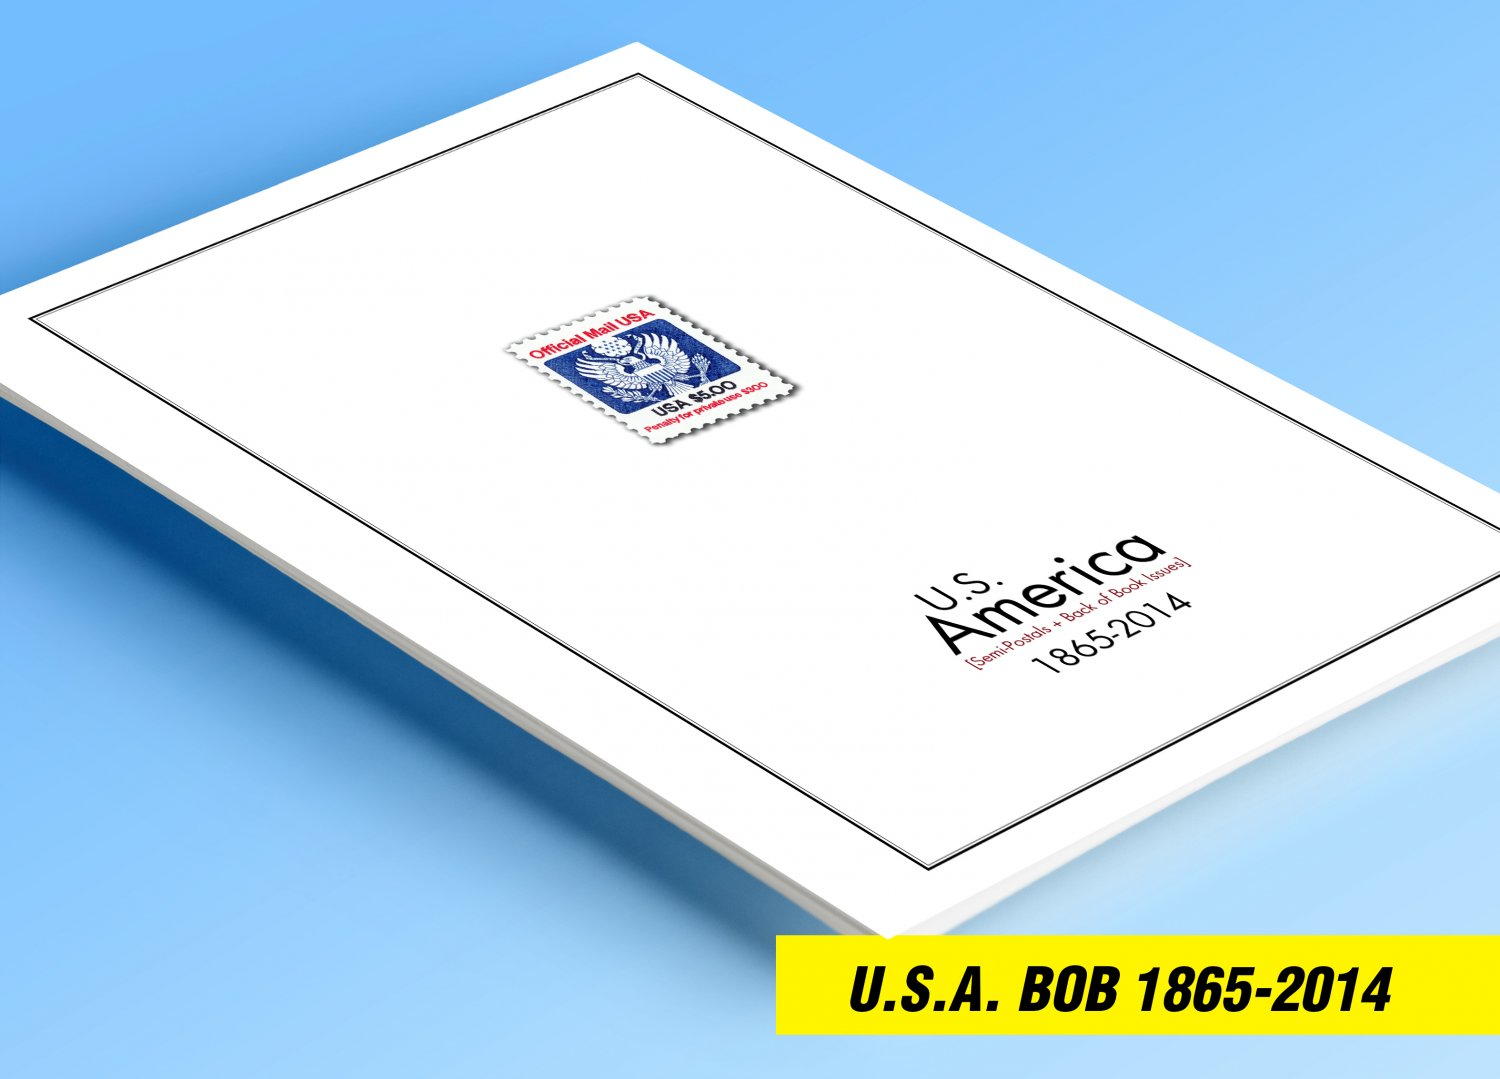 COLOR PRINTED U.S.A. SEMI-POSTALS + BOB 1865-2014 STAMP ALBUM PAGES (42 illustrated pages)